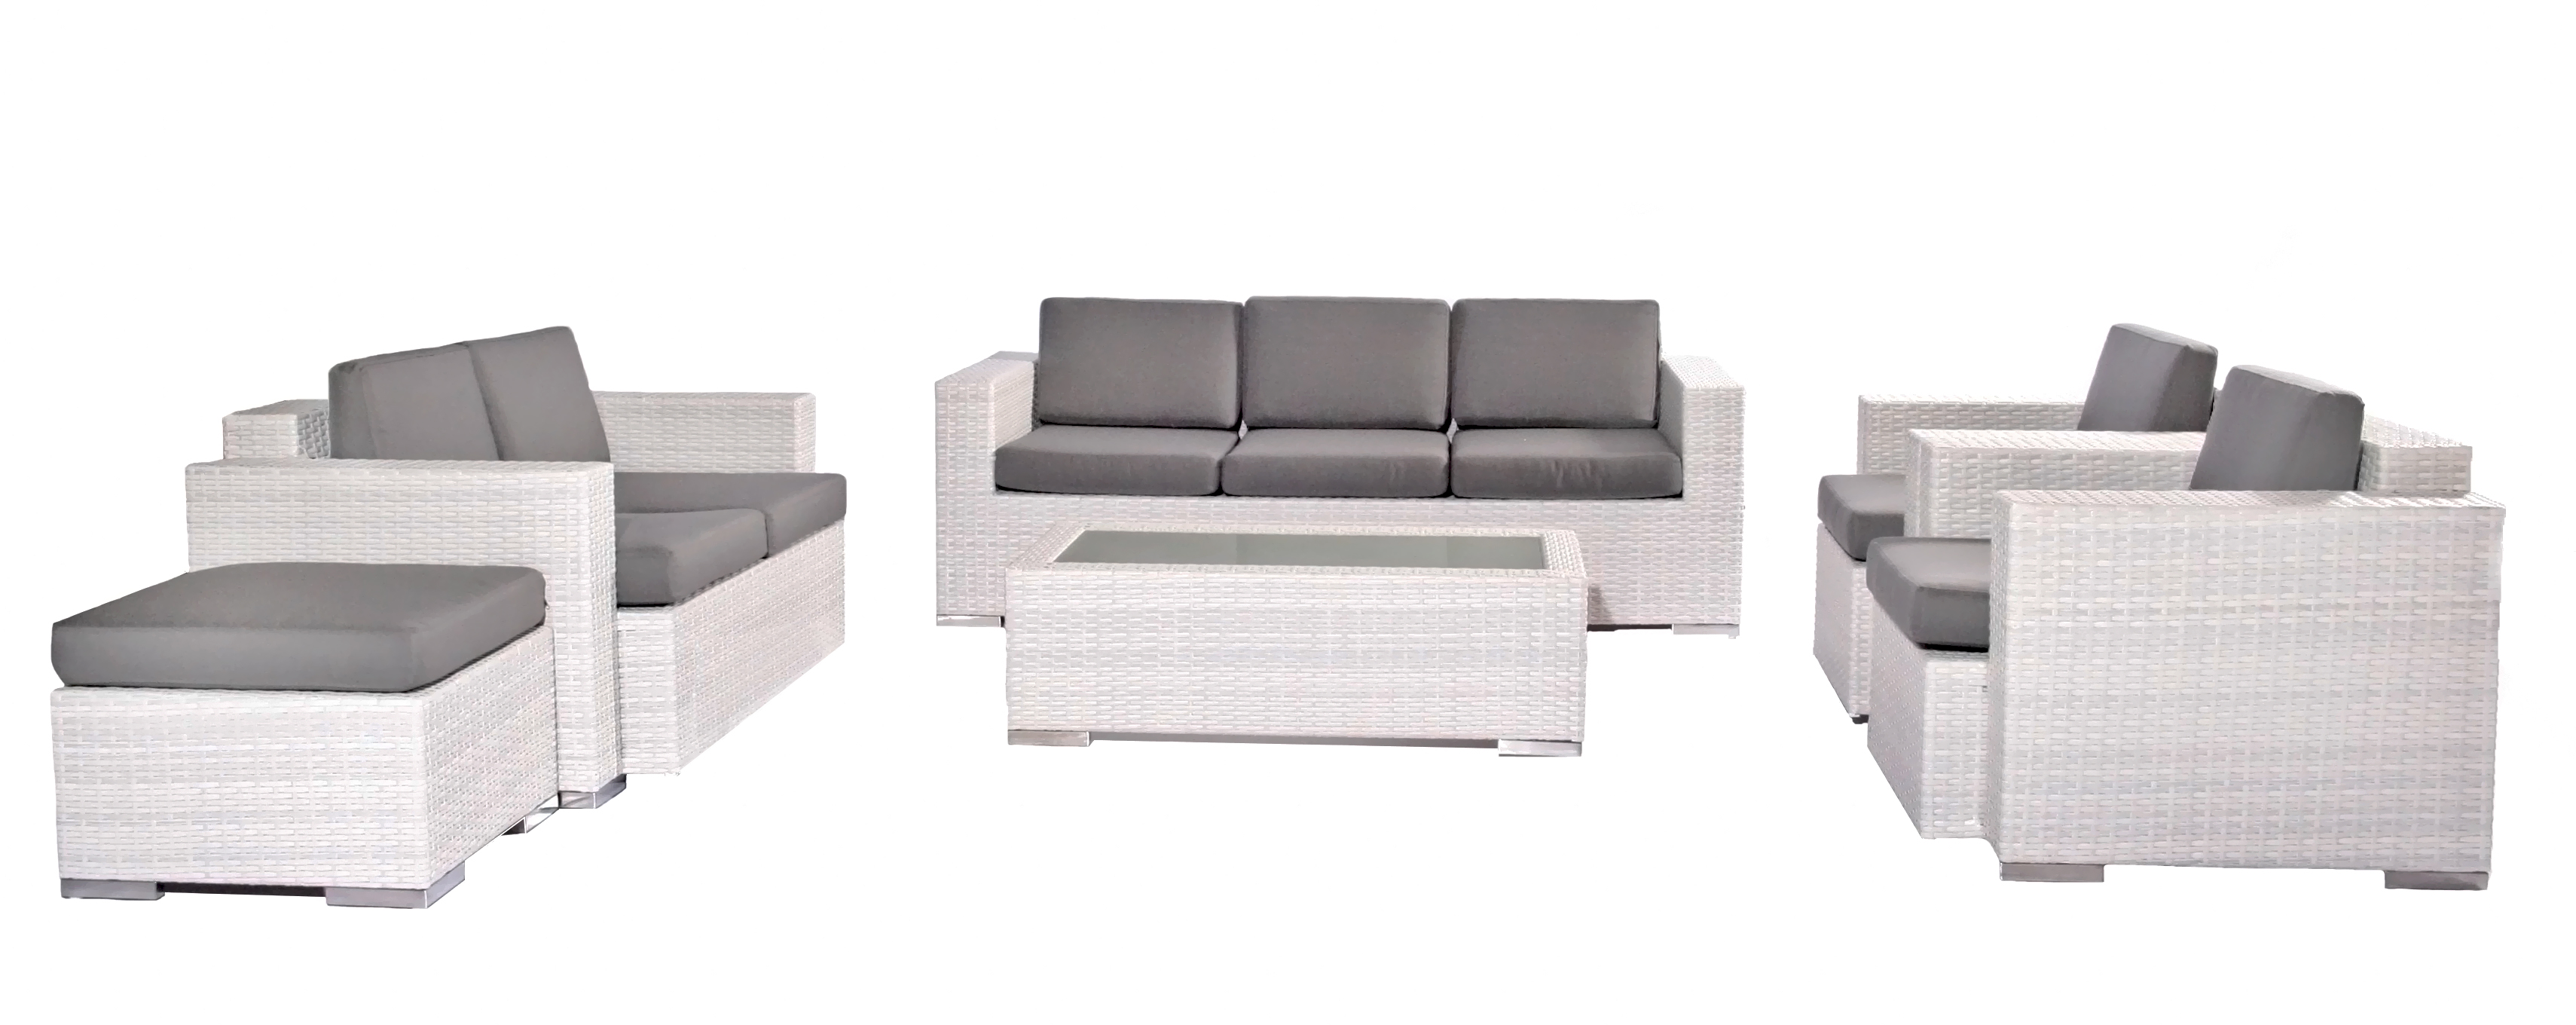 Dinya lounge suite white